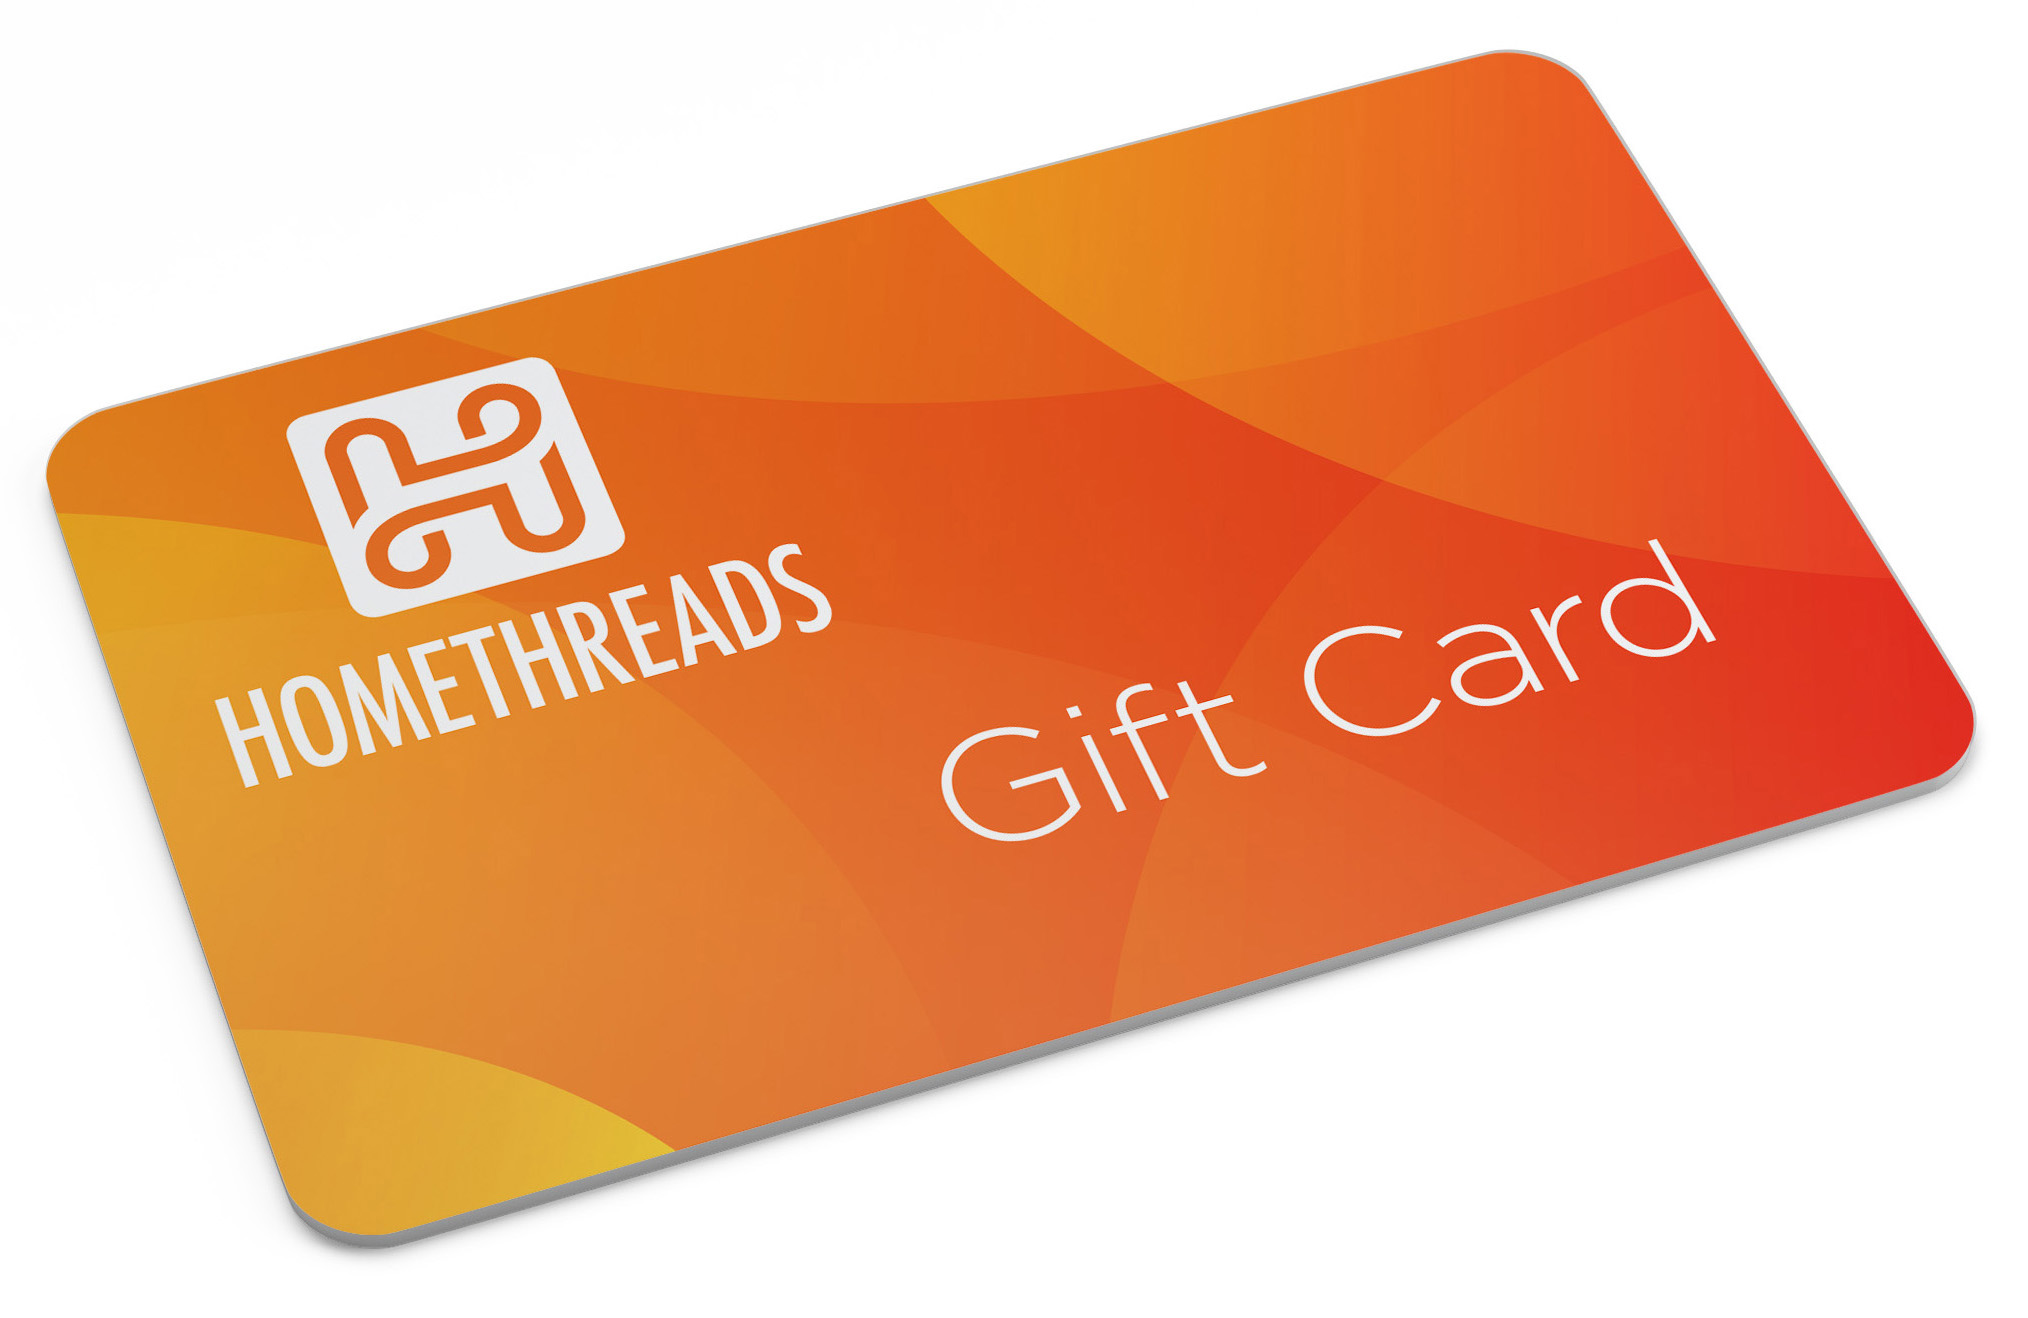 Homethreads Gift Cards